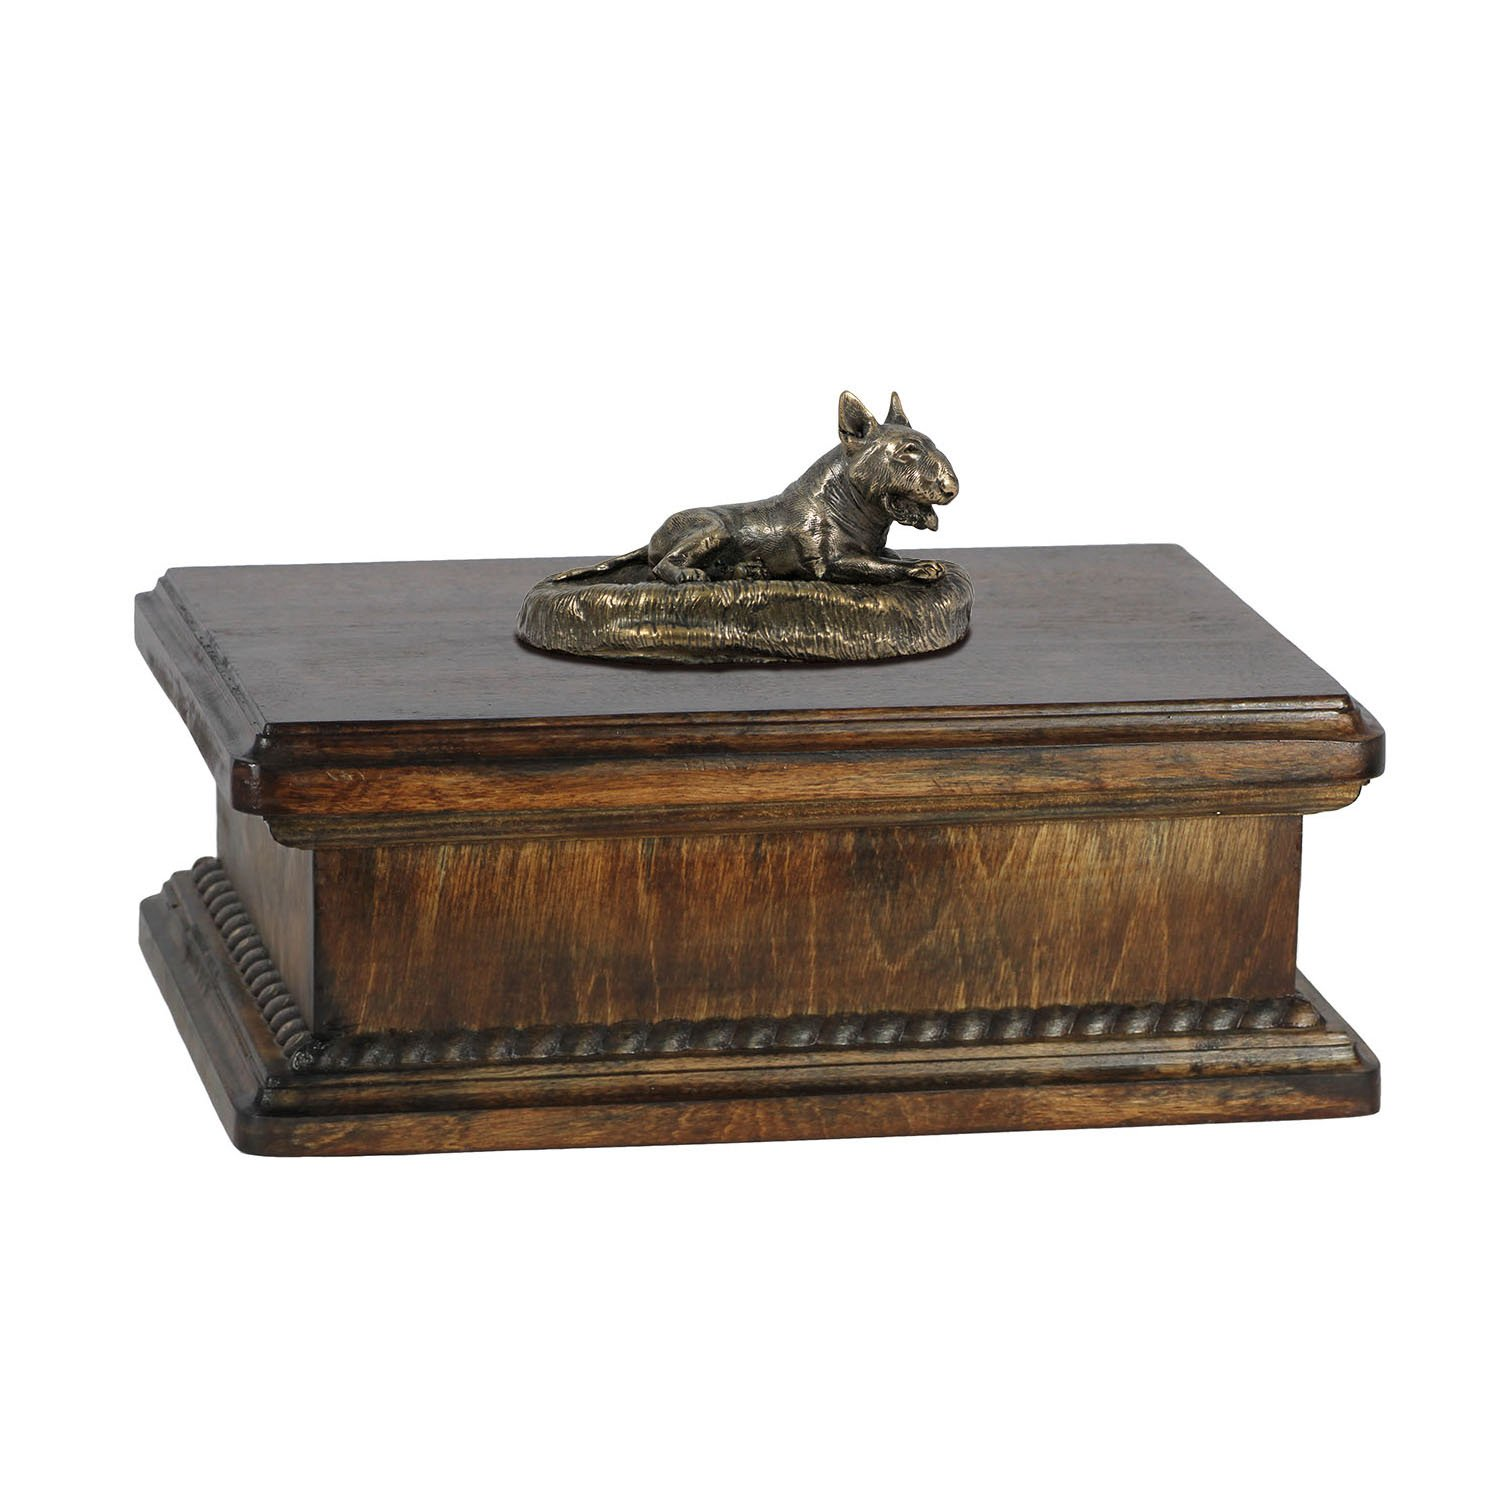 Bull Terrier (lying happy), memorial, urn for dog's ashes, with dog statue, exclusive, ArtDog